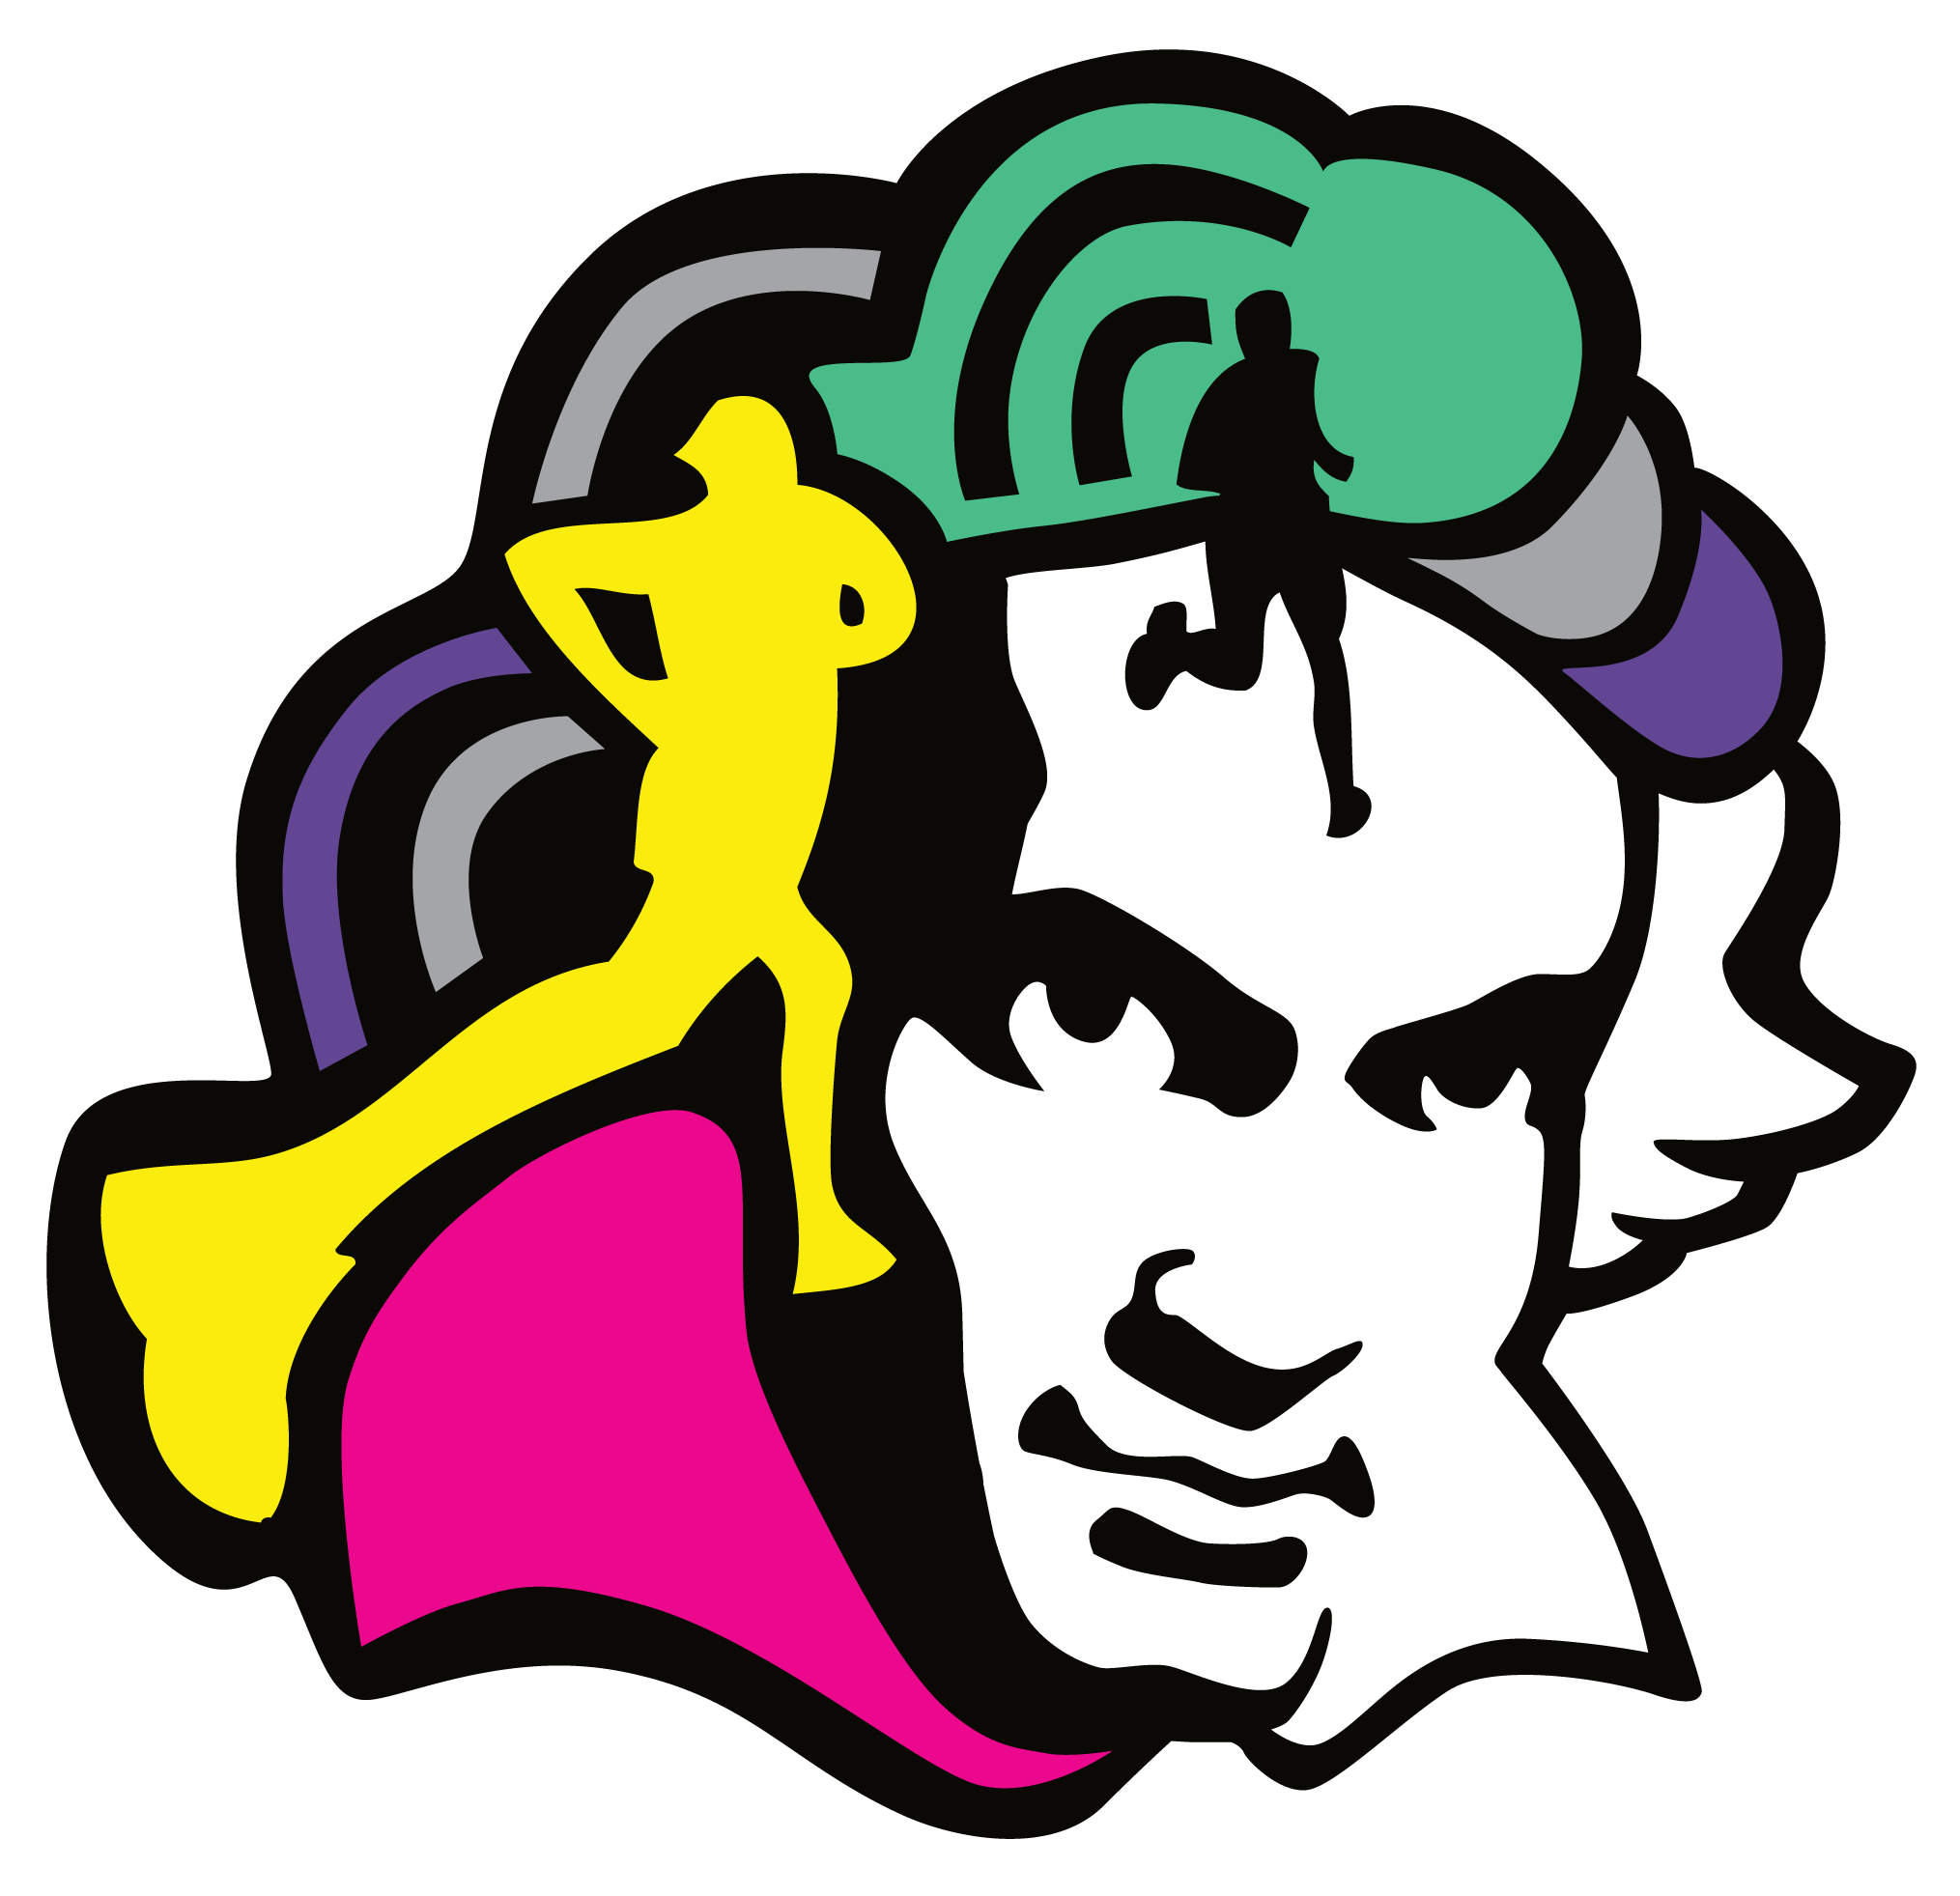 Beethoven drawing real. Erie runners clubbeat k